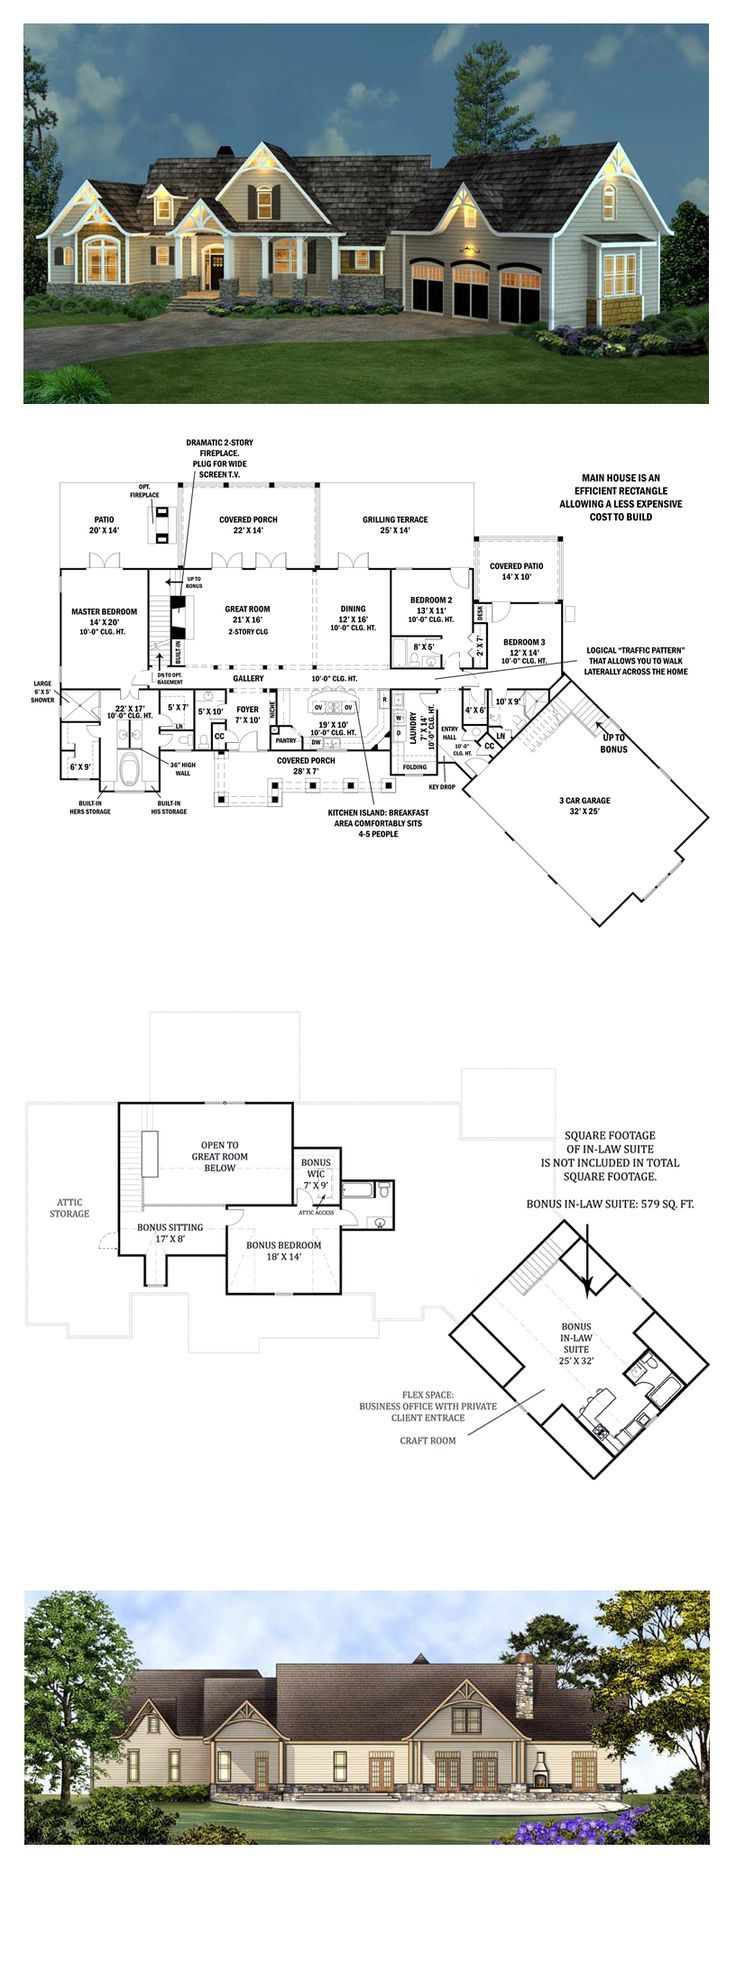 Ranch house plan 98267 total living area 2498 sq ft for Cedar shake home plans